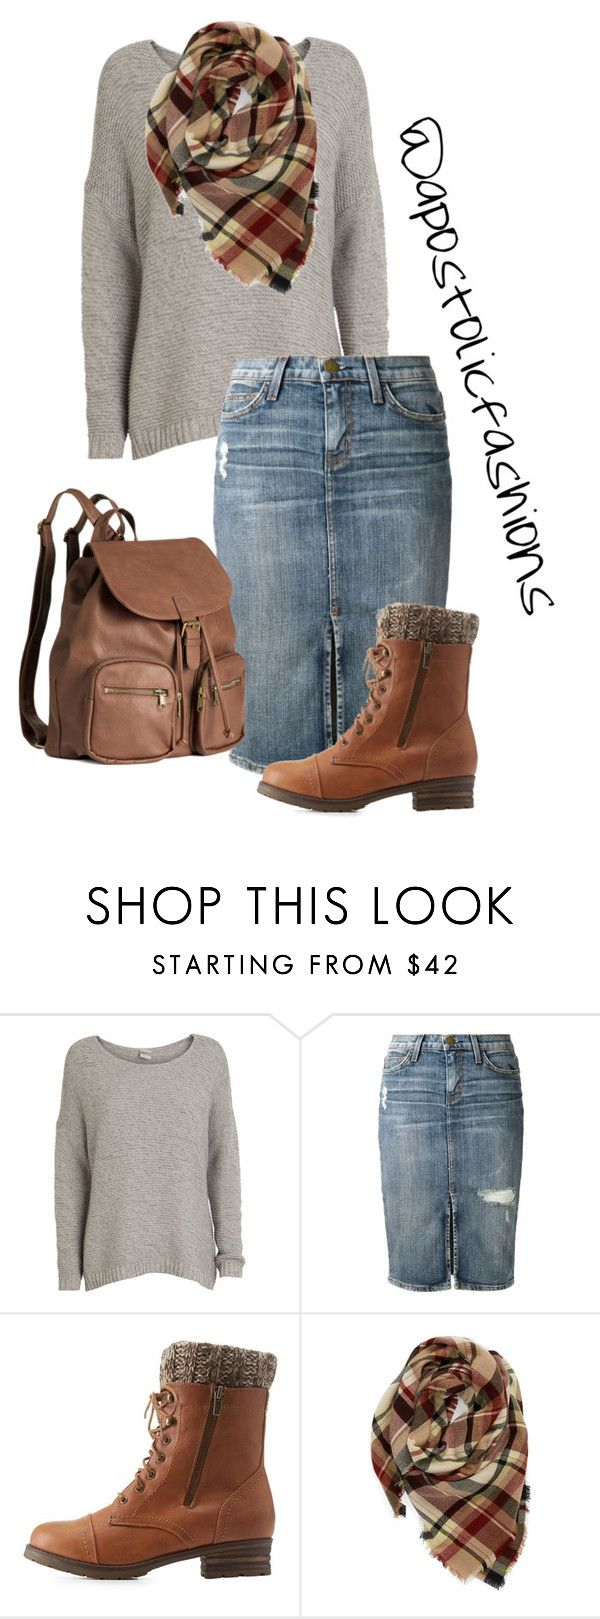 """Apostolic Fashions #1109"" by apostolicfashions on Polyvore featuring Object Collectors Item, Current/Elliott, Charlotte Russe, Evelyn K and H&M"